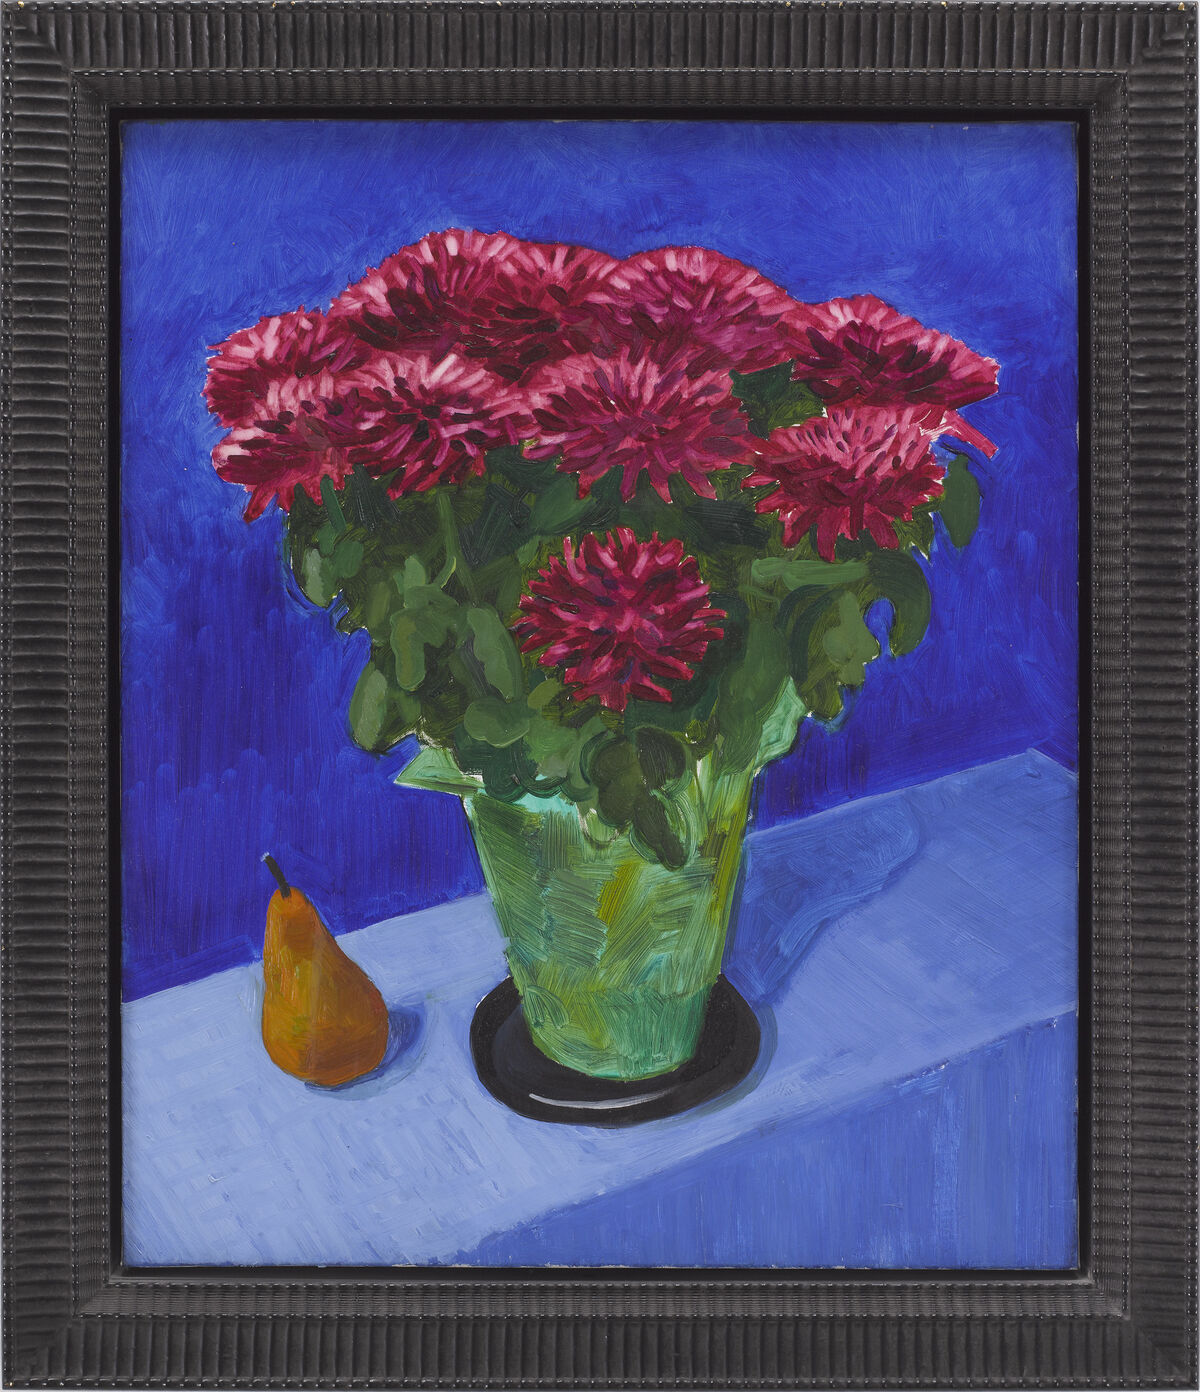 David Hockney, Chrysanthemums, 1996. Courtesy of Pace Gallery.